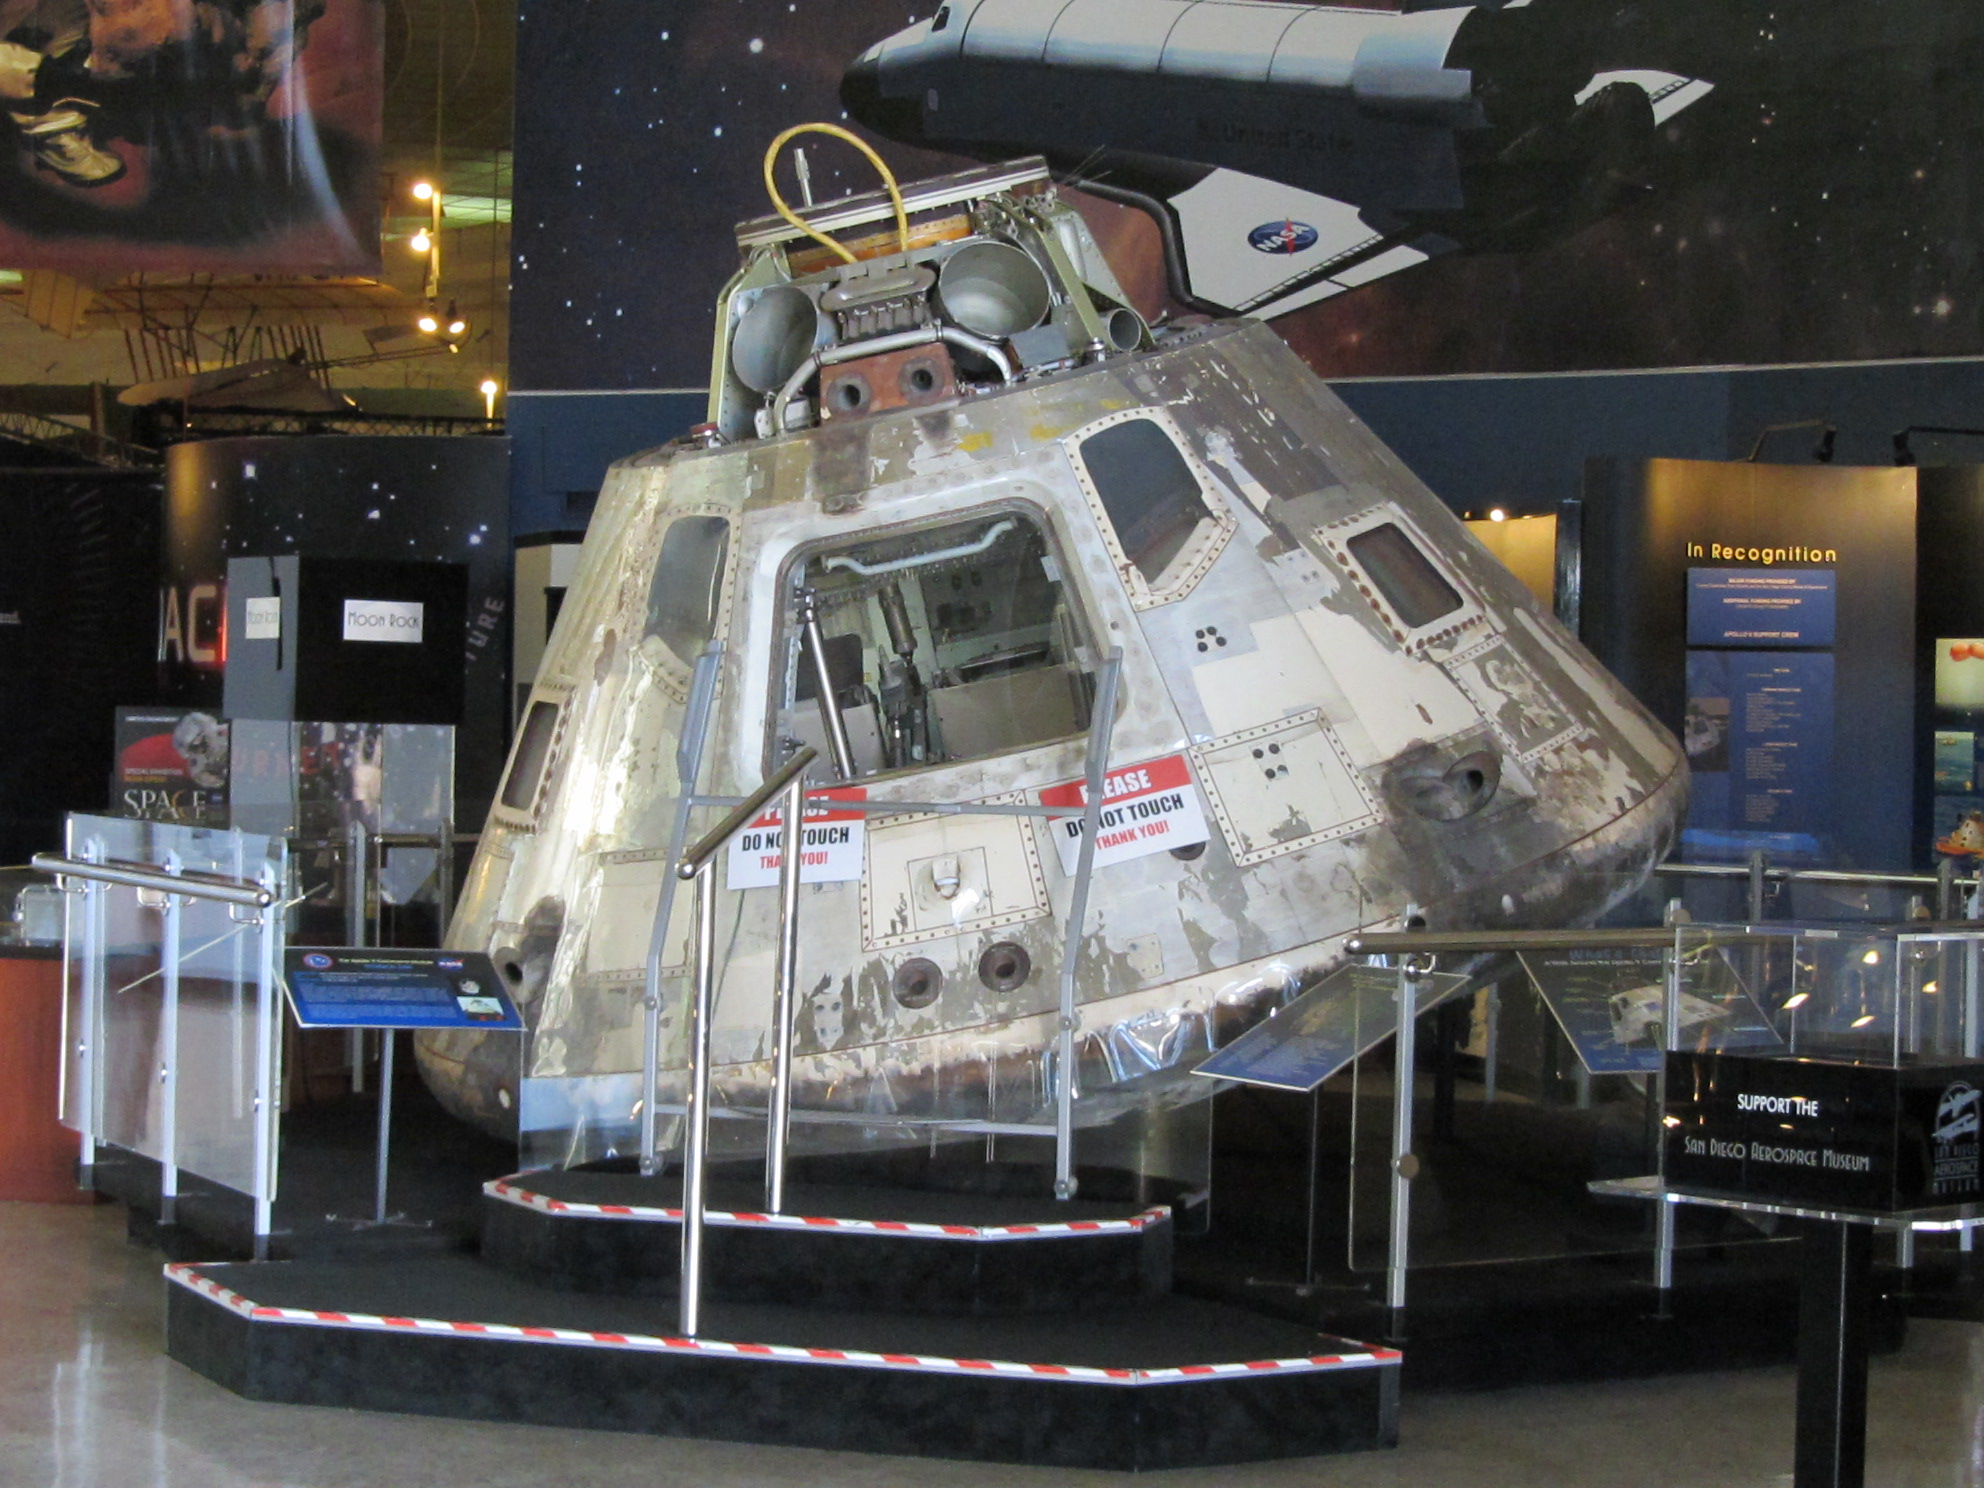 File:Apollo 9 Command Module.jpg - Wikimedia Commons